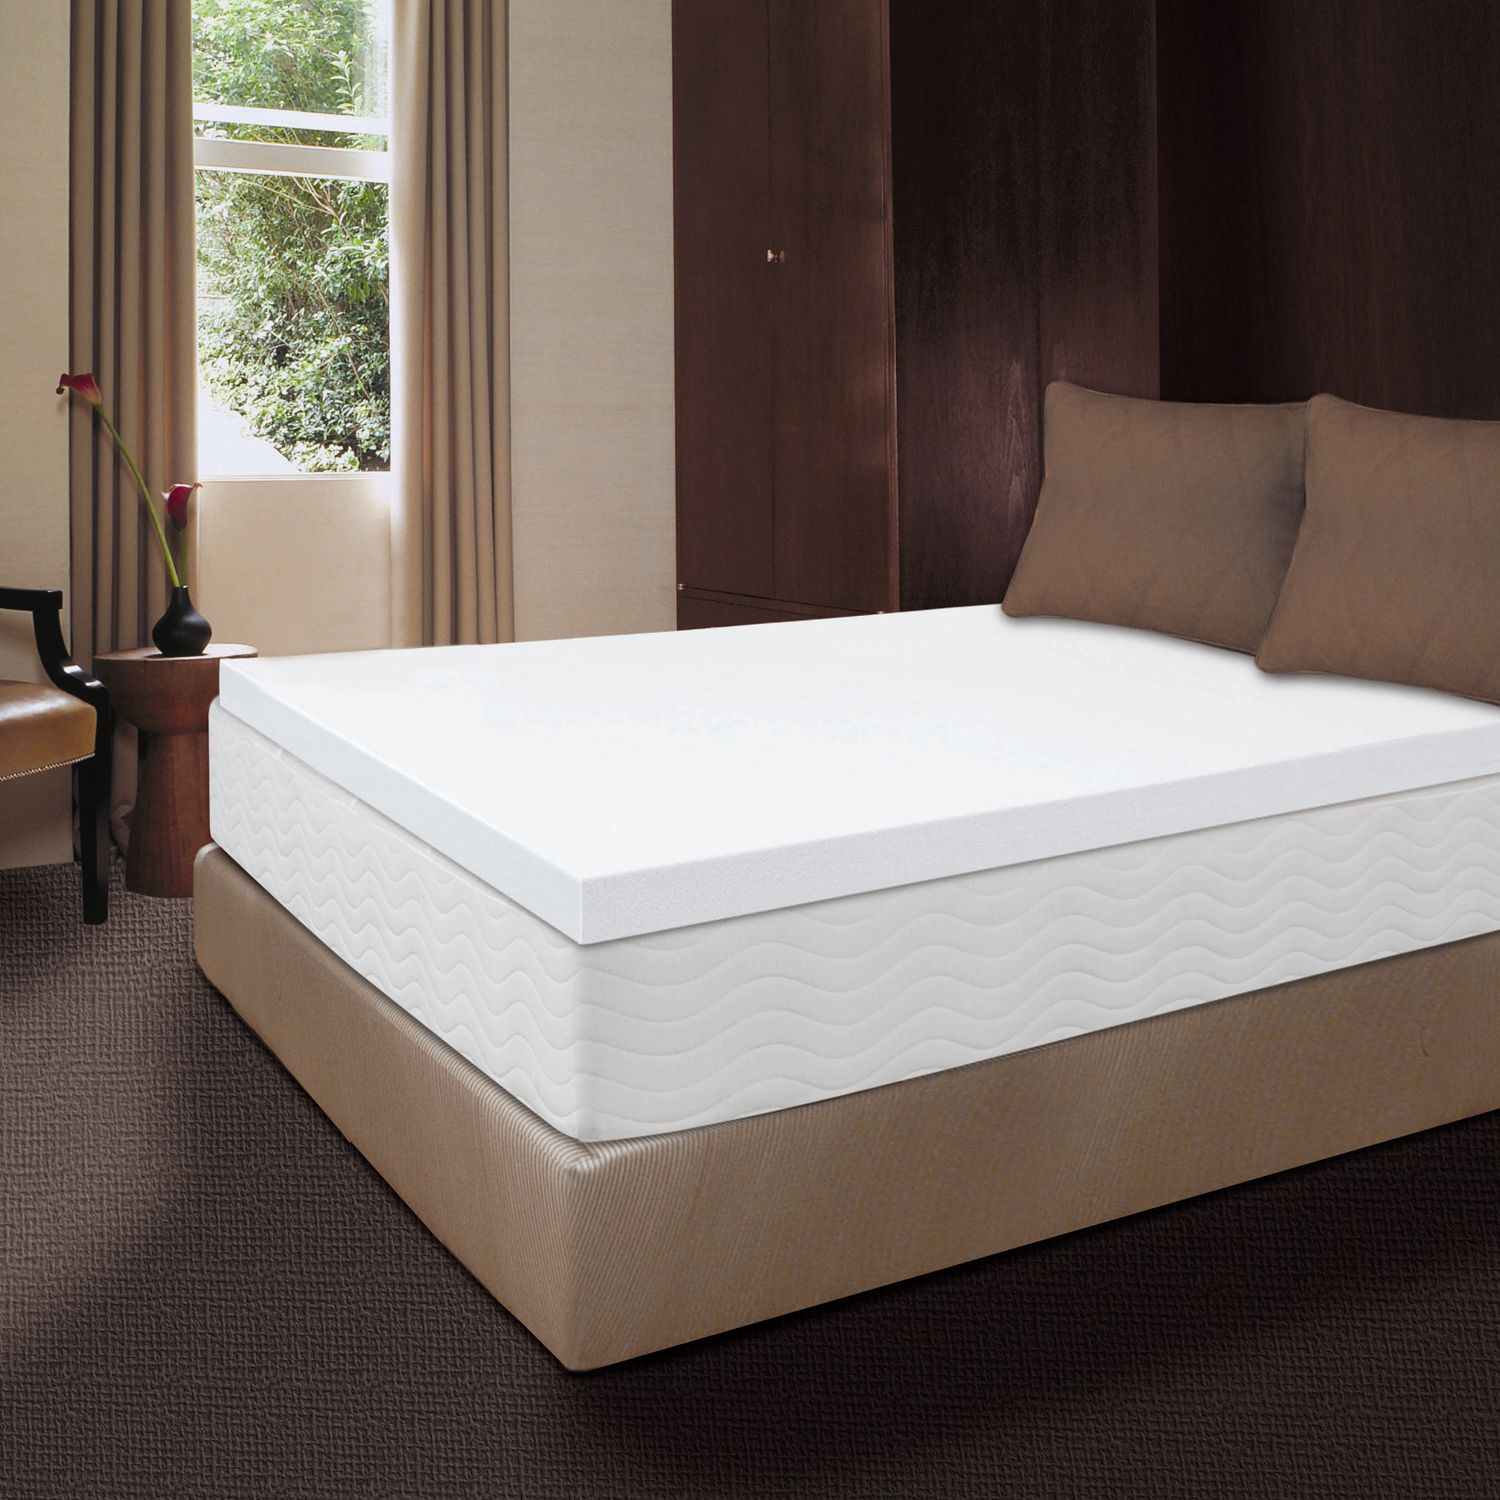 memory foam mattress topper - Foam Mattresses